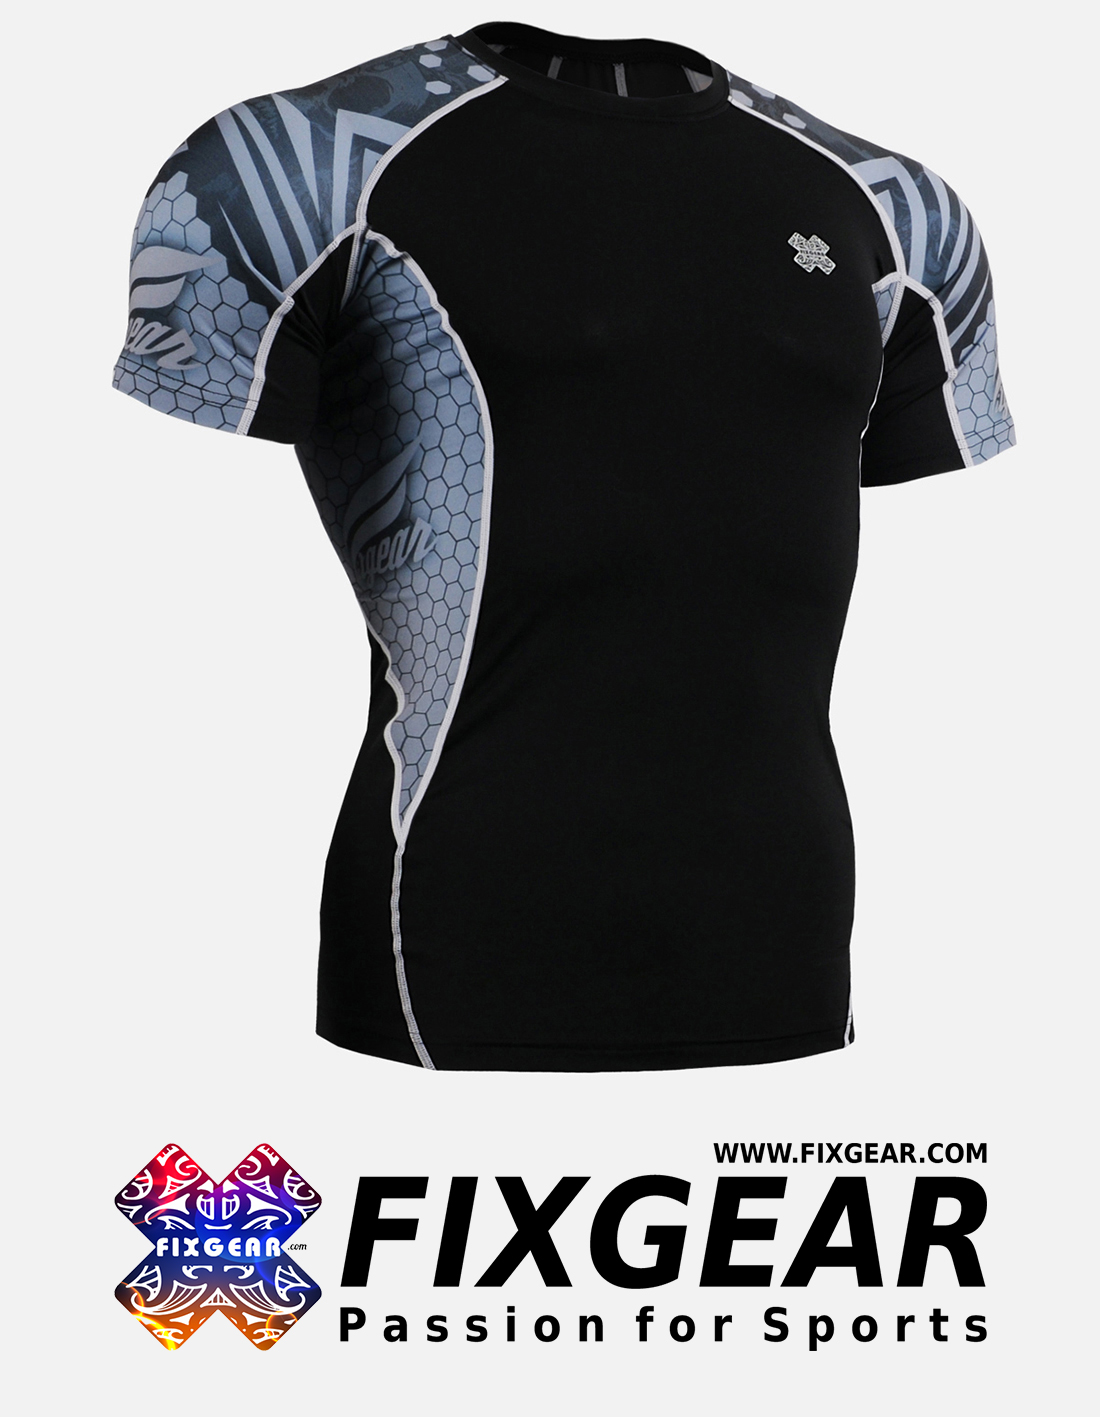 FIXGEAR C2S-B41 Compression Base Layer Shirt Short Sleeve